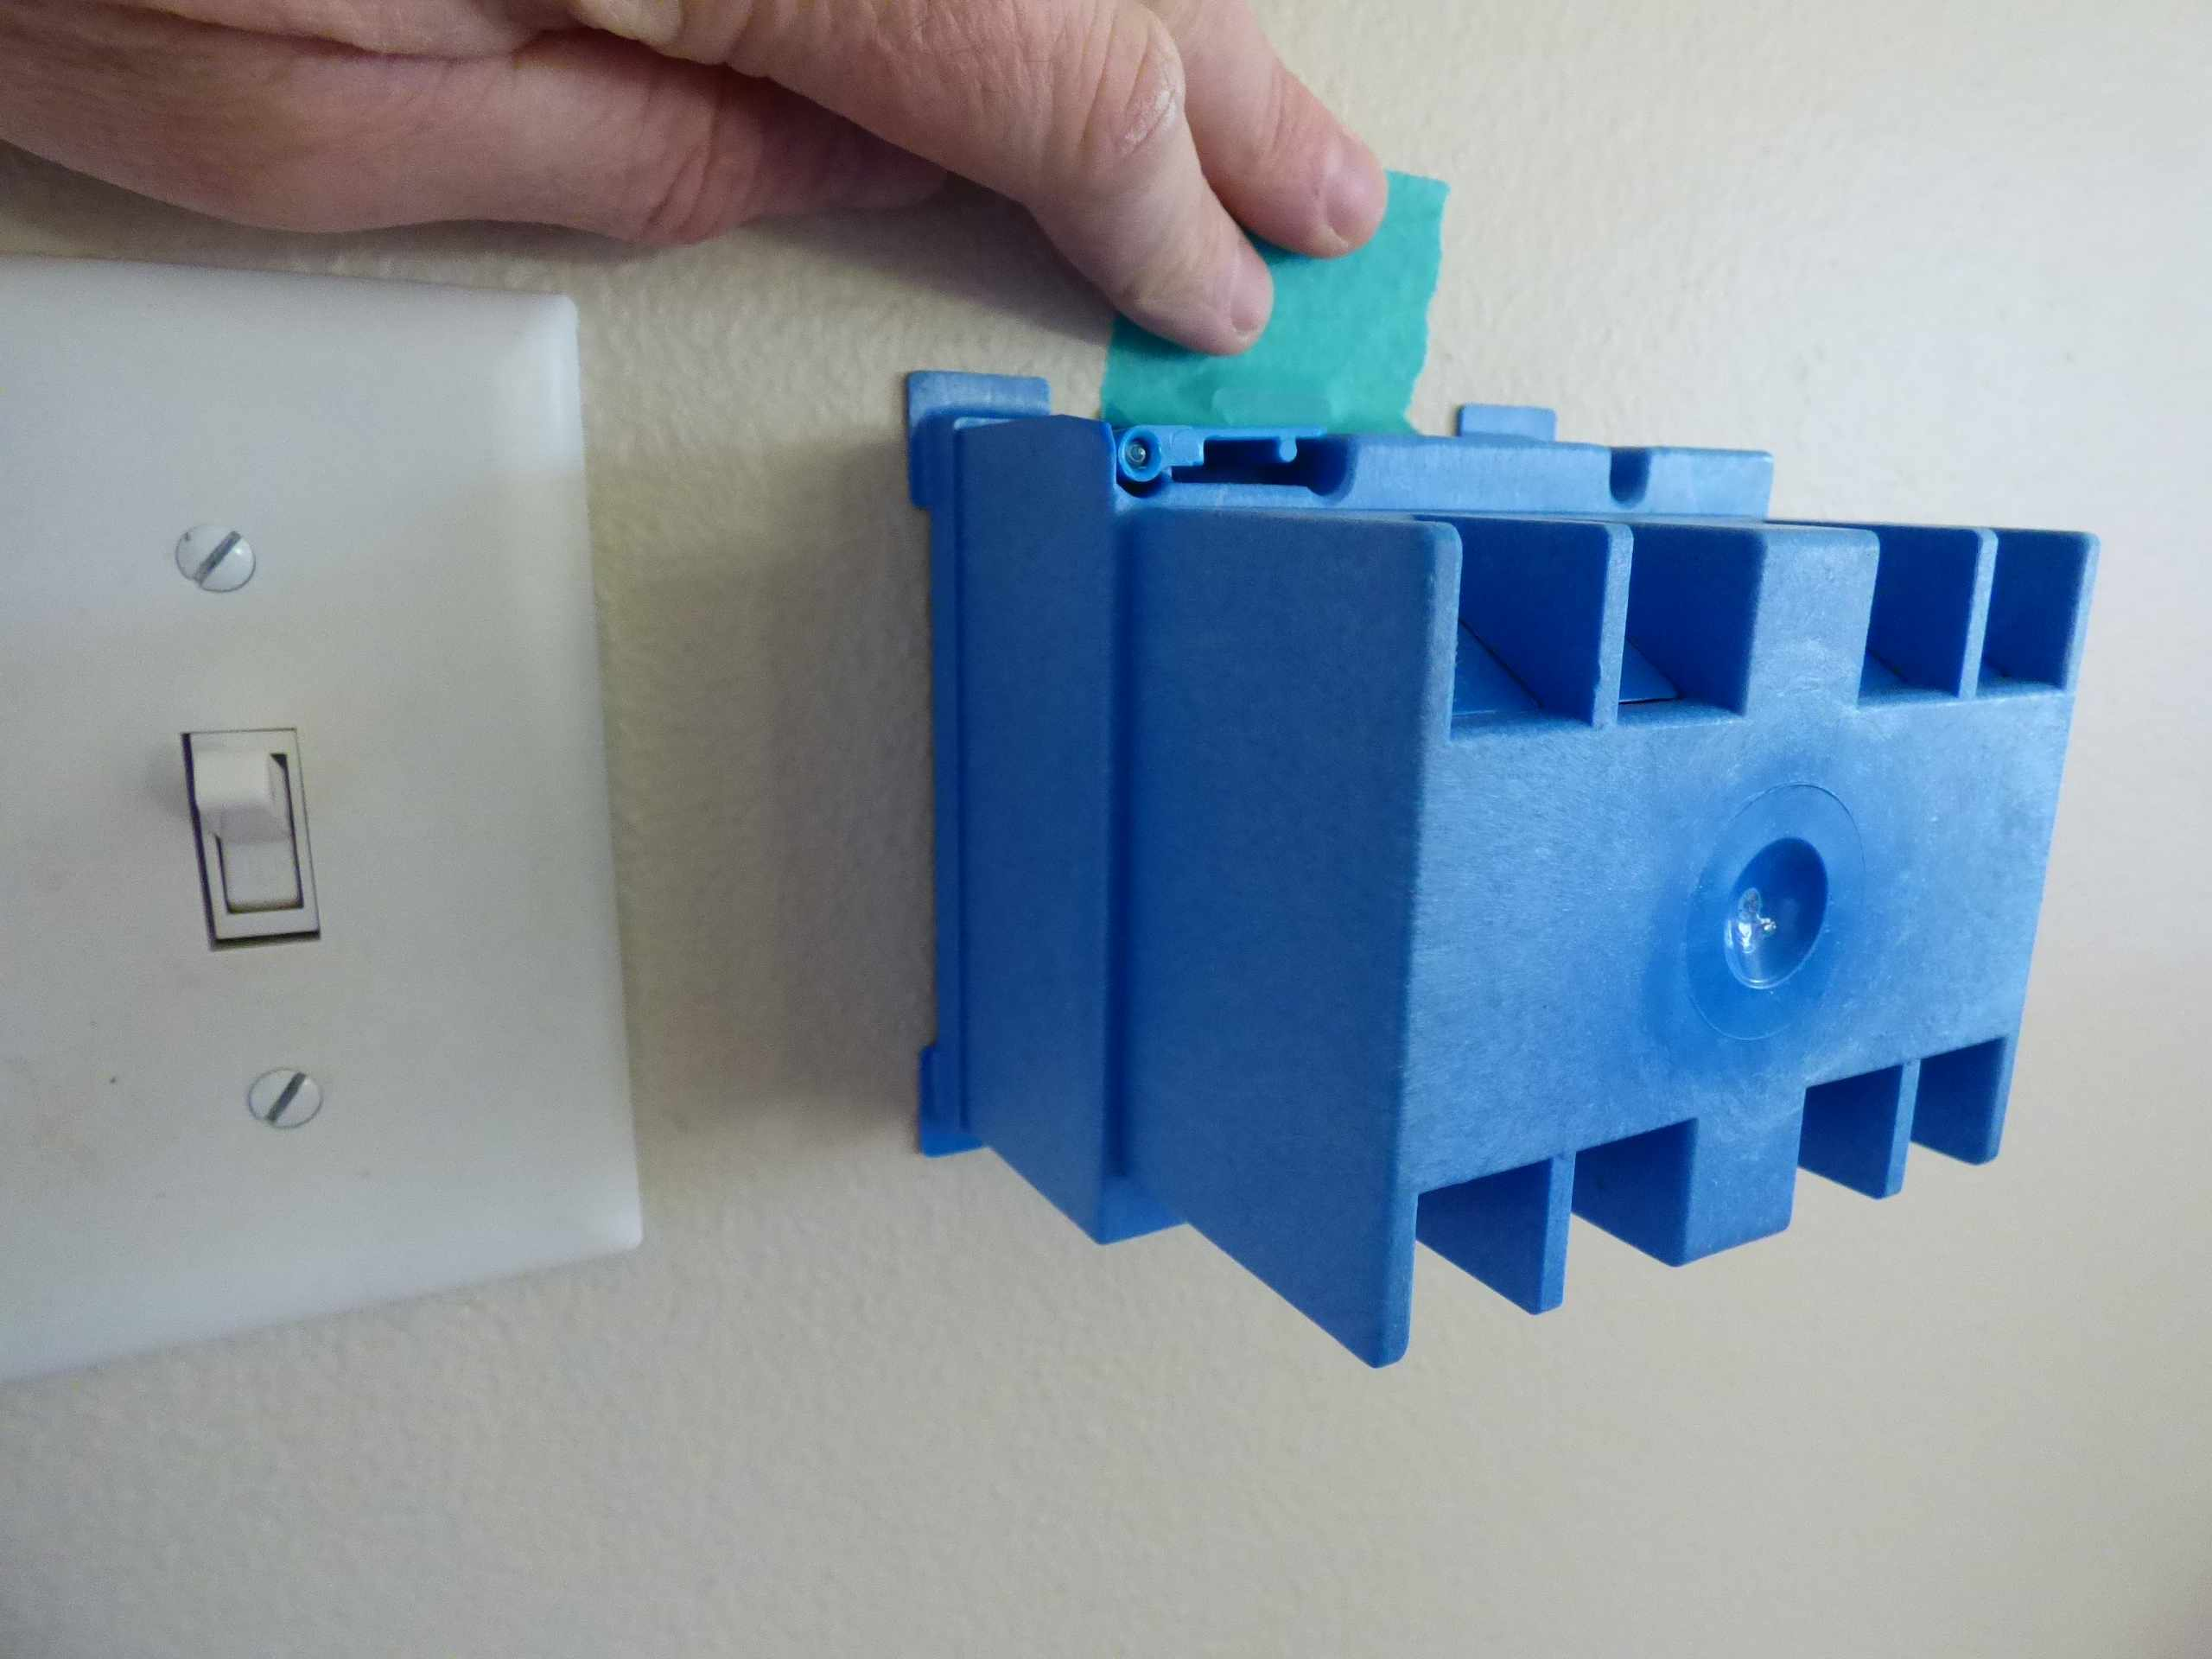 Tape Box to Wall